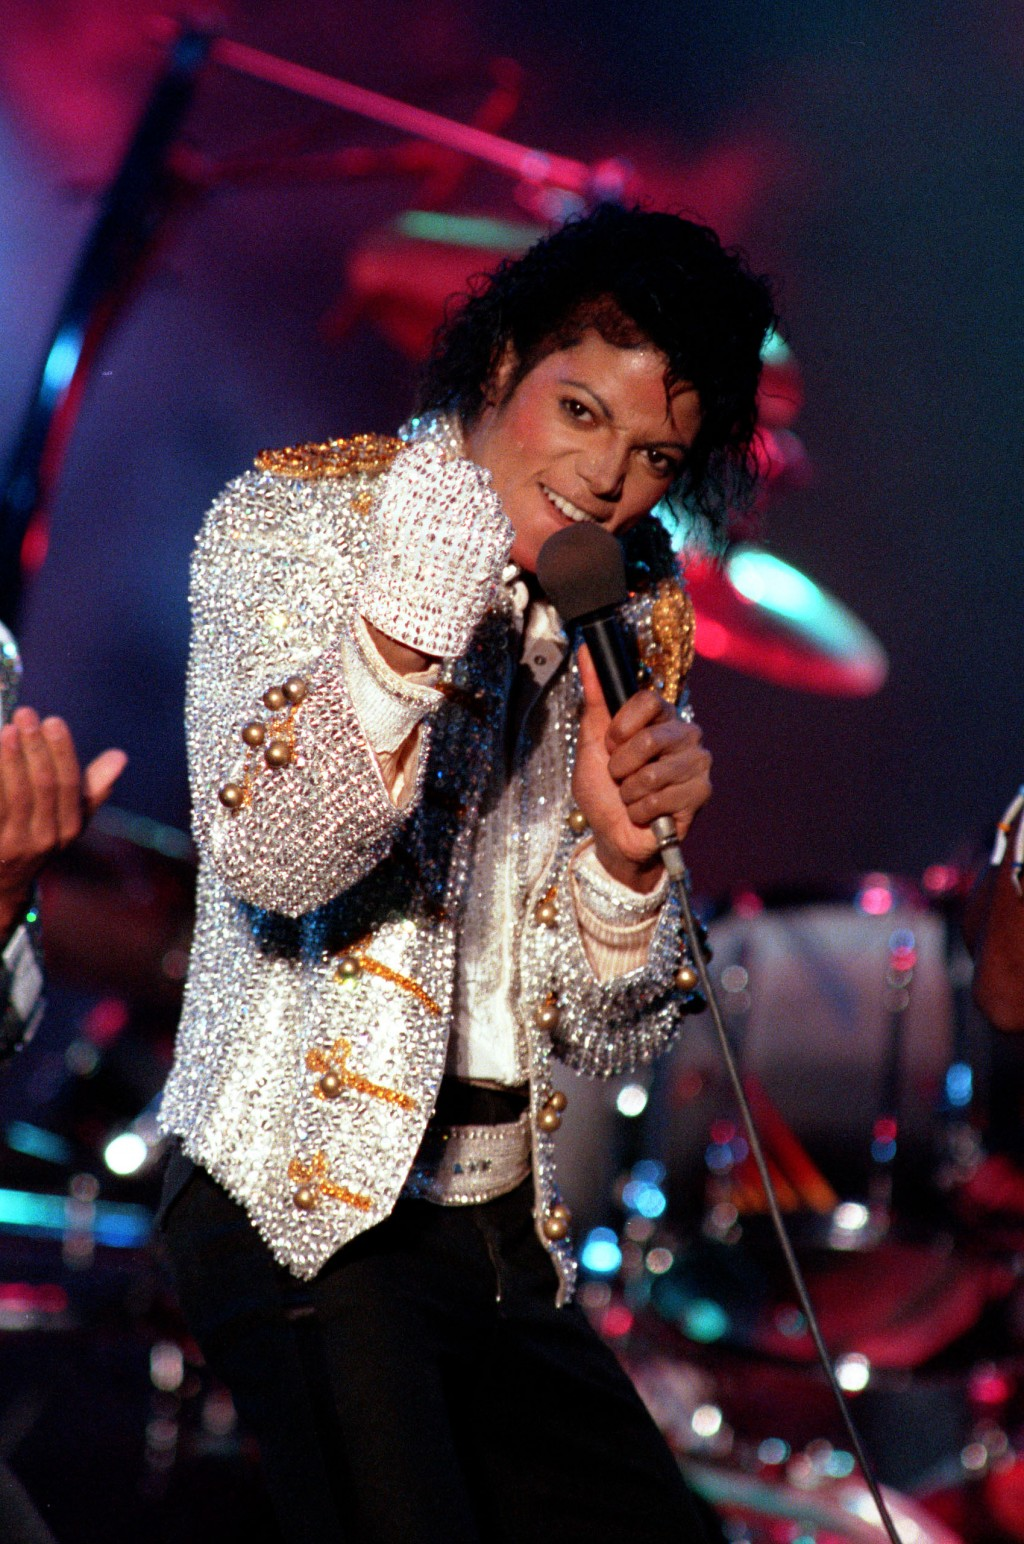 FILE - In this Dec. 3, 1984 photo, Michael Jackson performs with his brothers at Dodger Stadium in Los Angeles, as part of their Victory Tour concert.